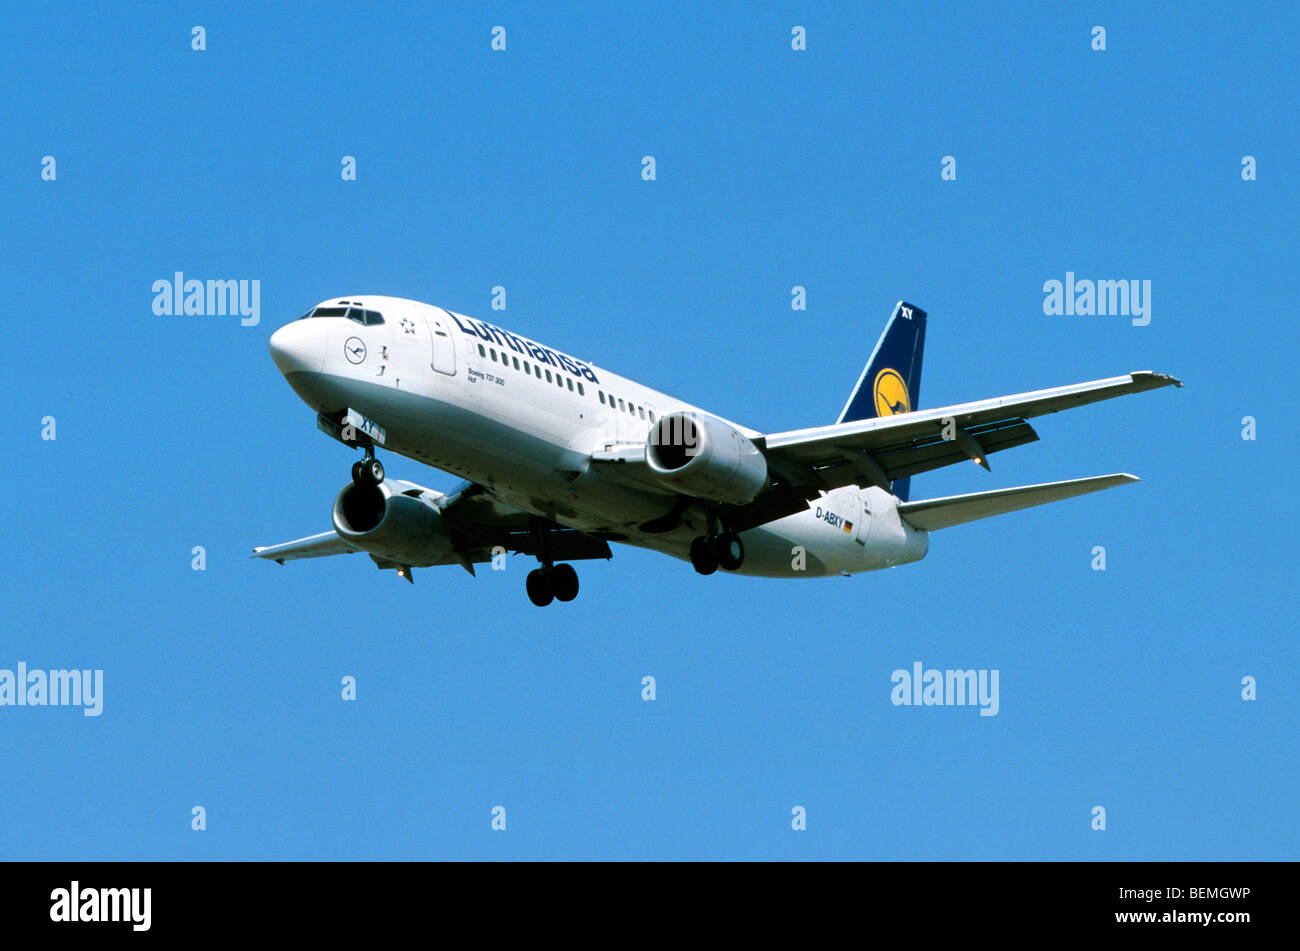 Airplane flying against blue sky - Stock Image